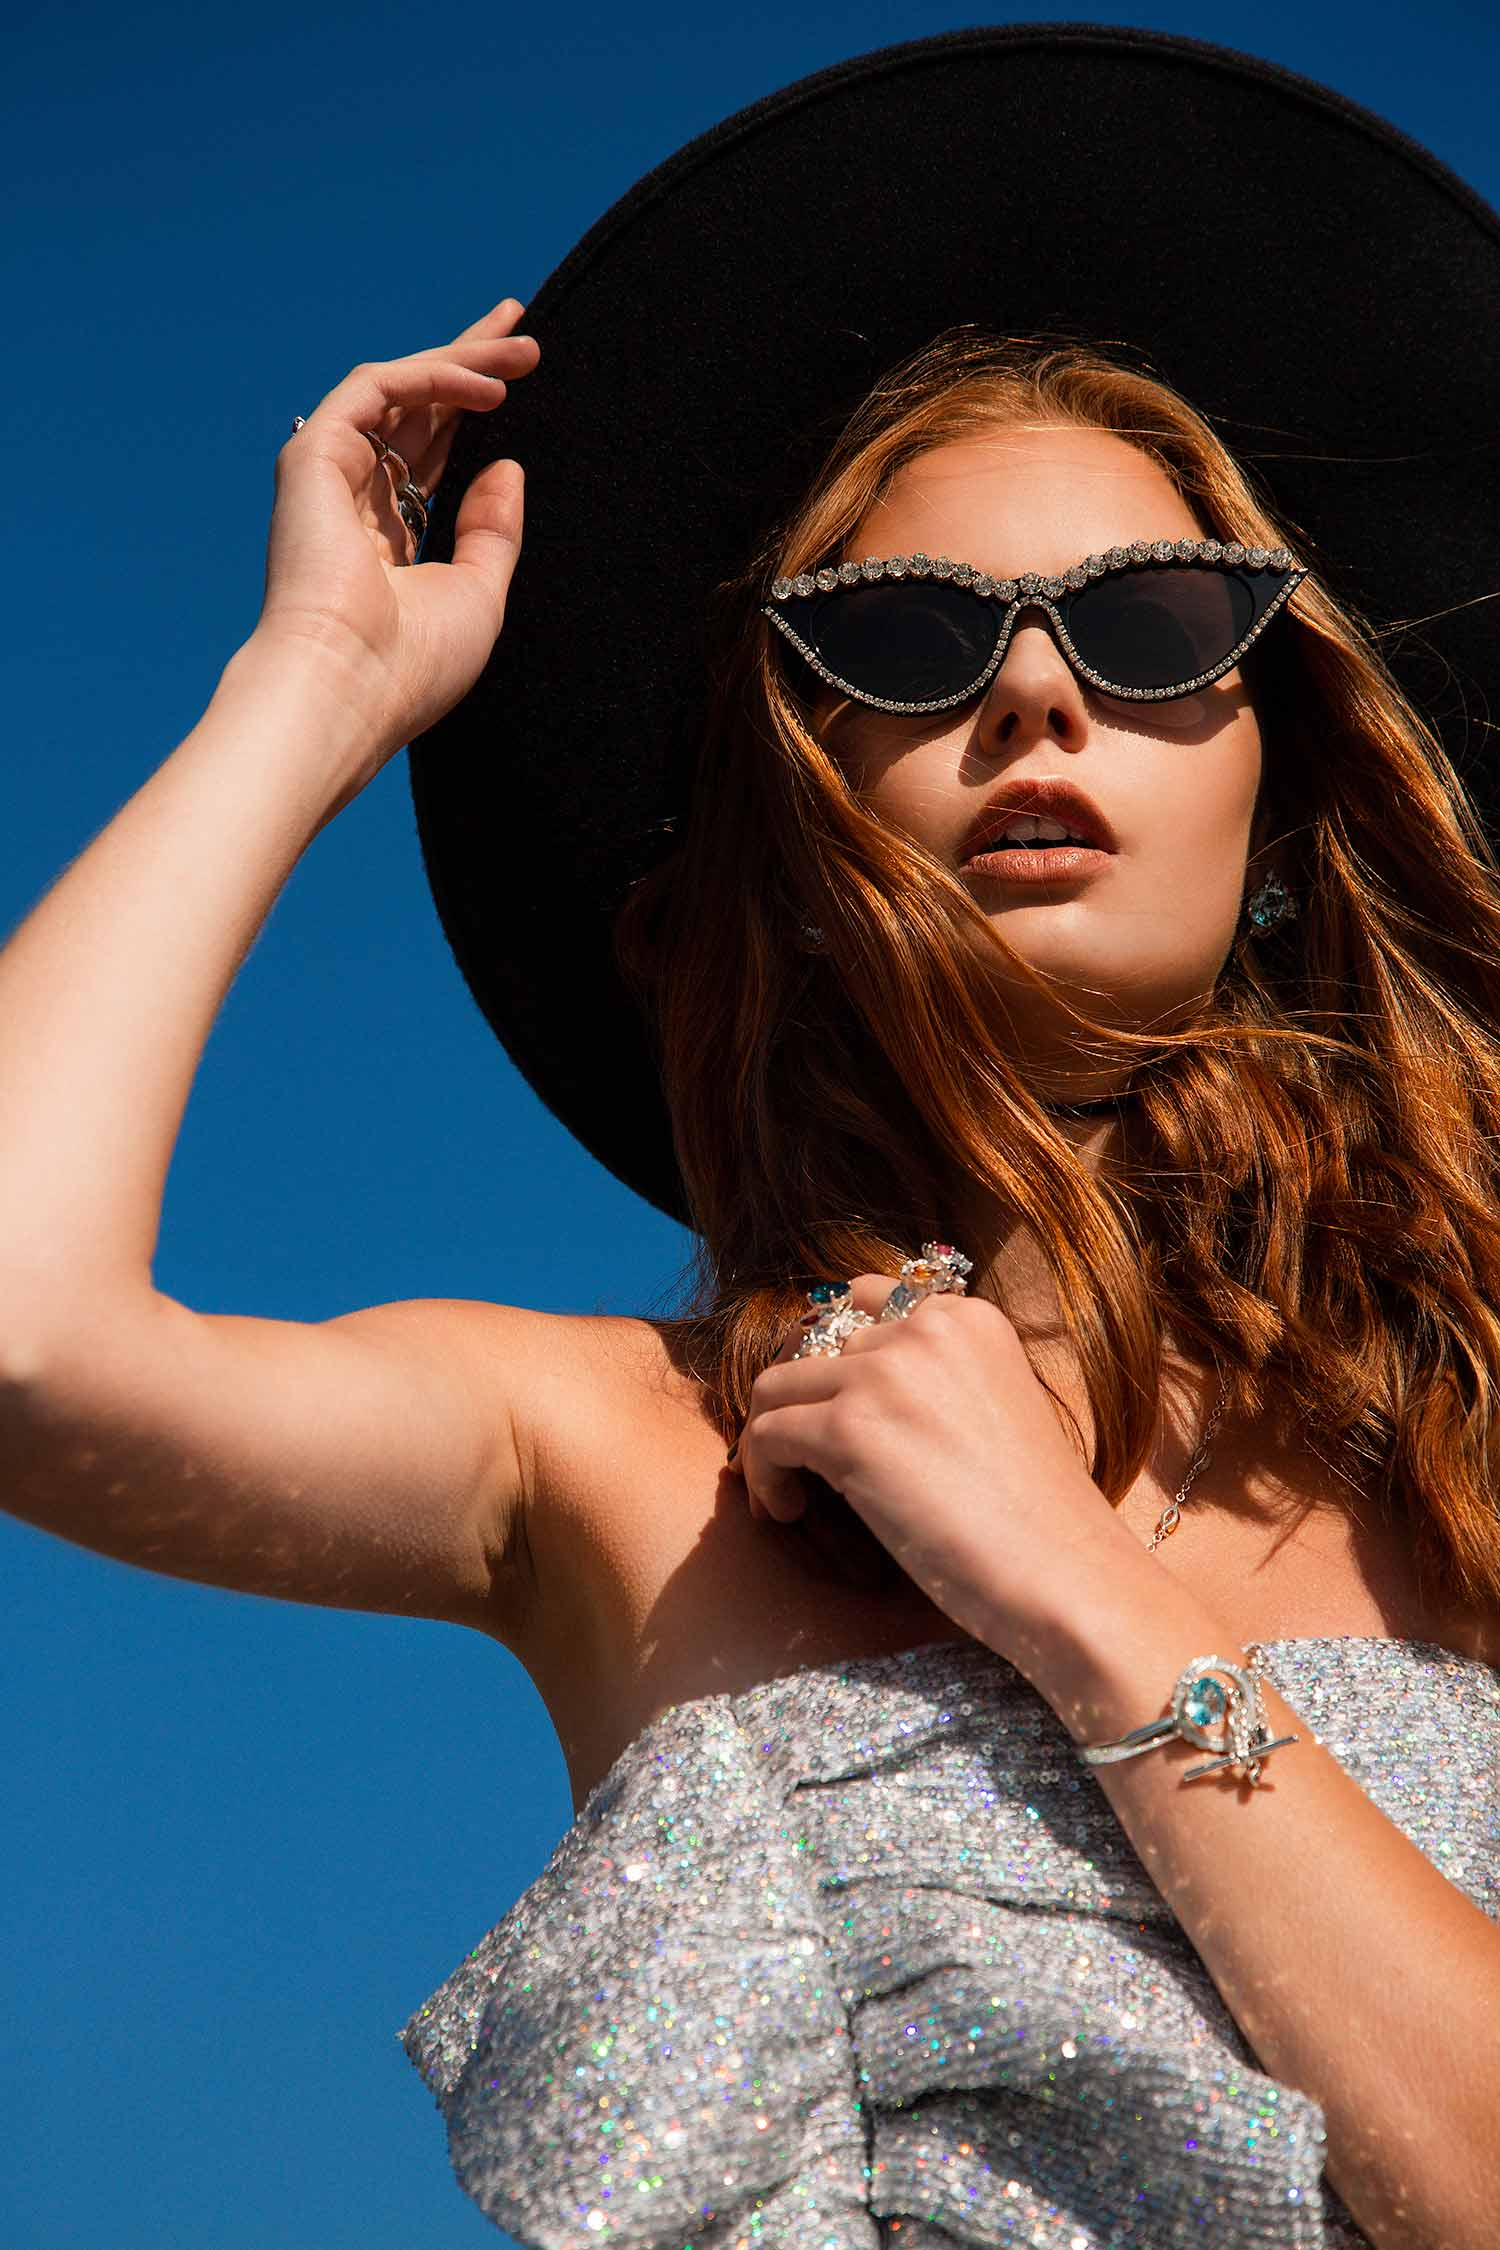 Fashion model wearing contemporary jewelry from Celestial collection.